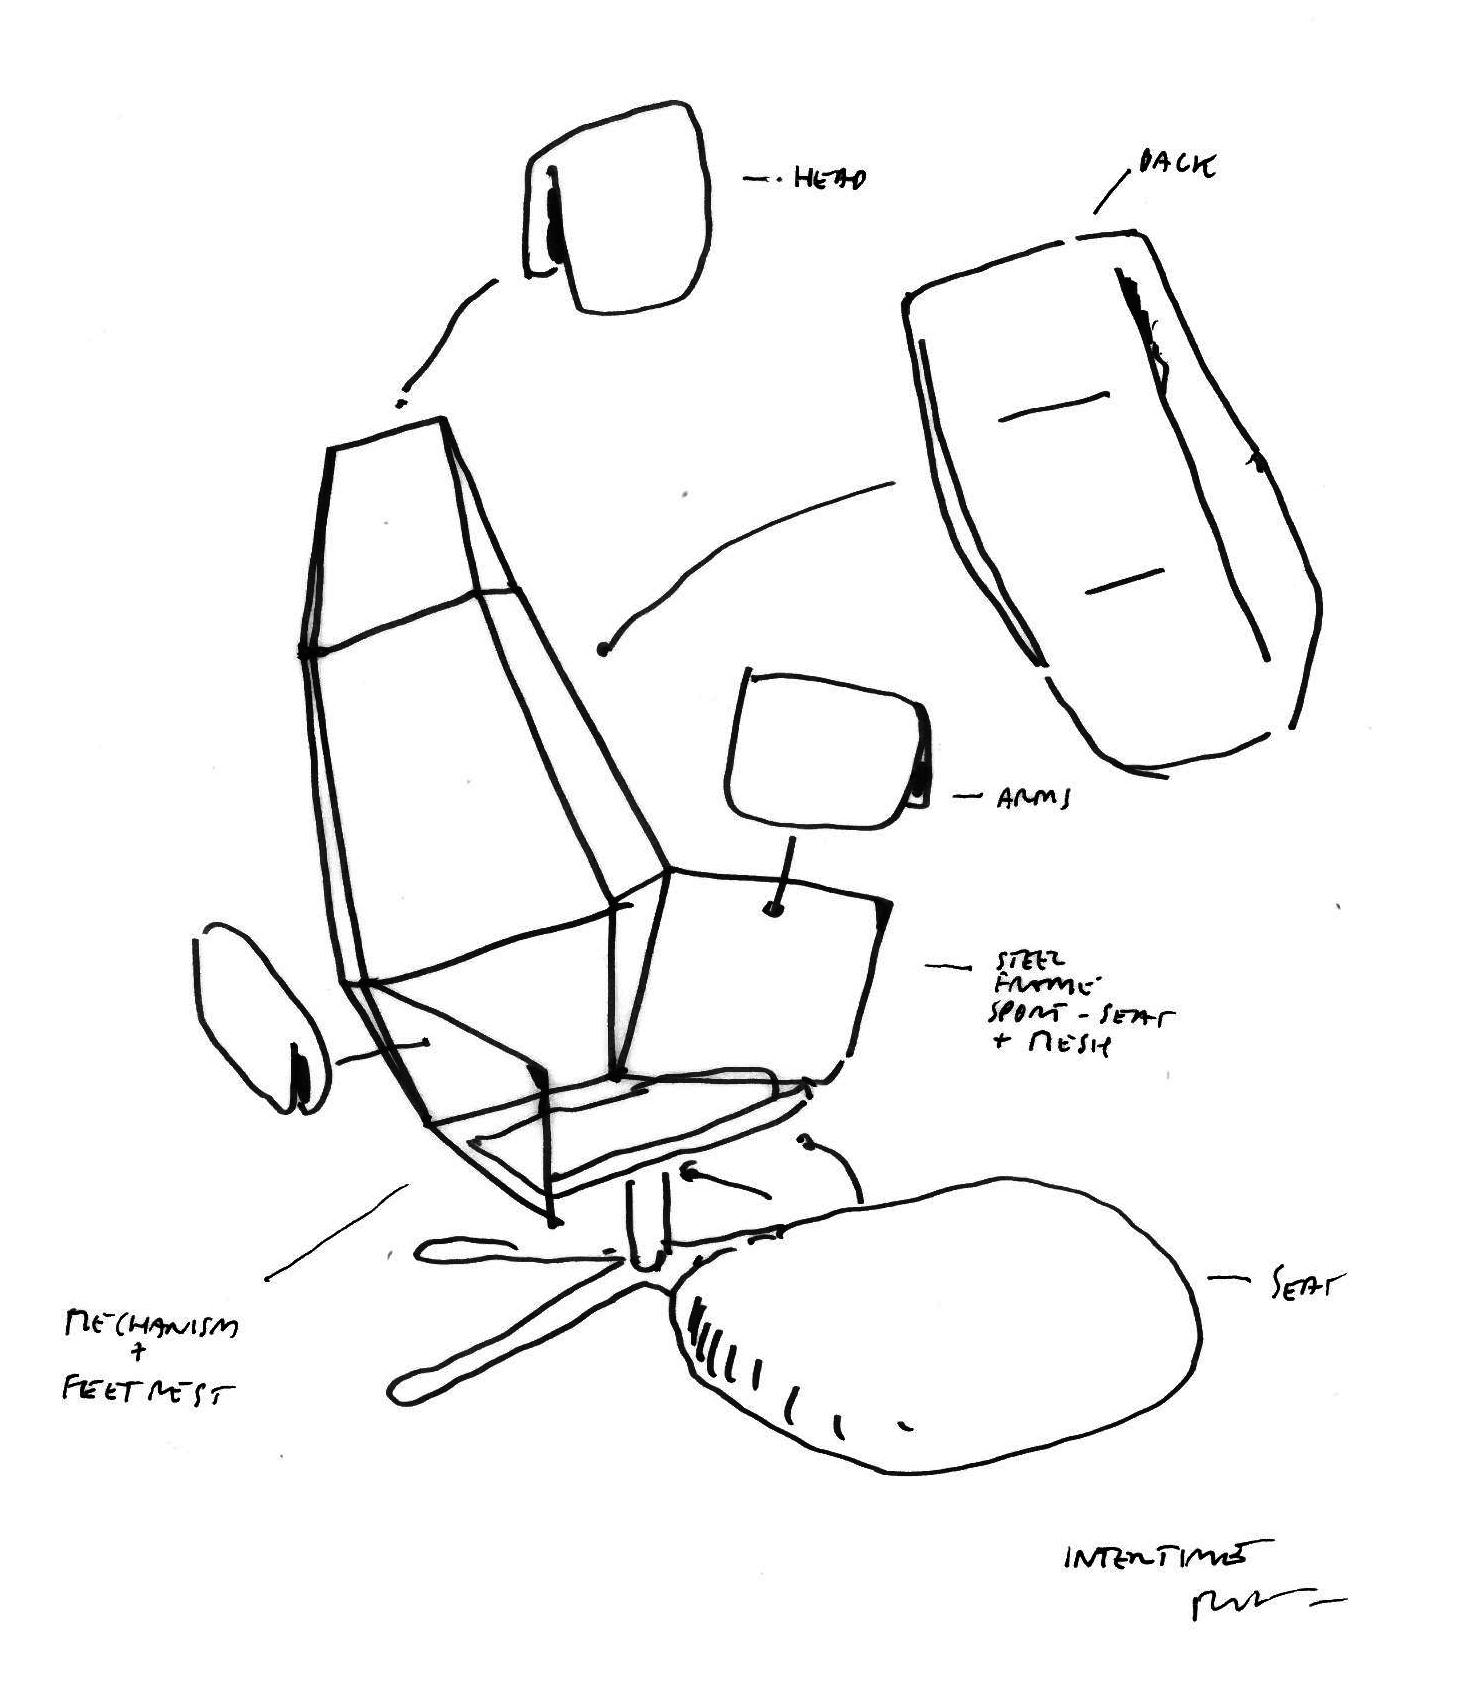 Illustration of Mesh Recliner by Intertime